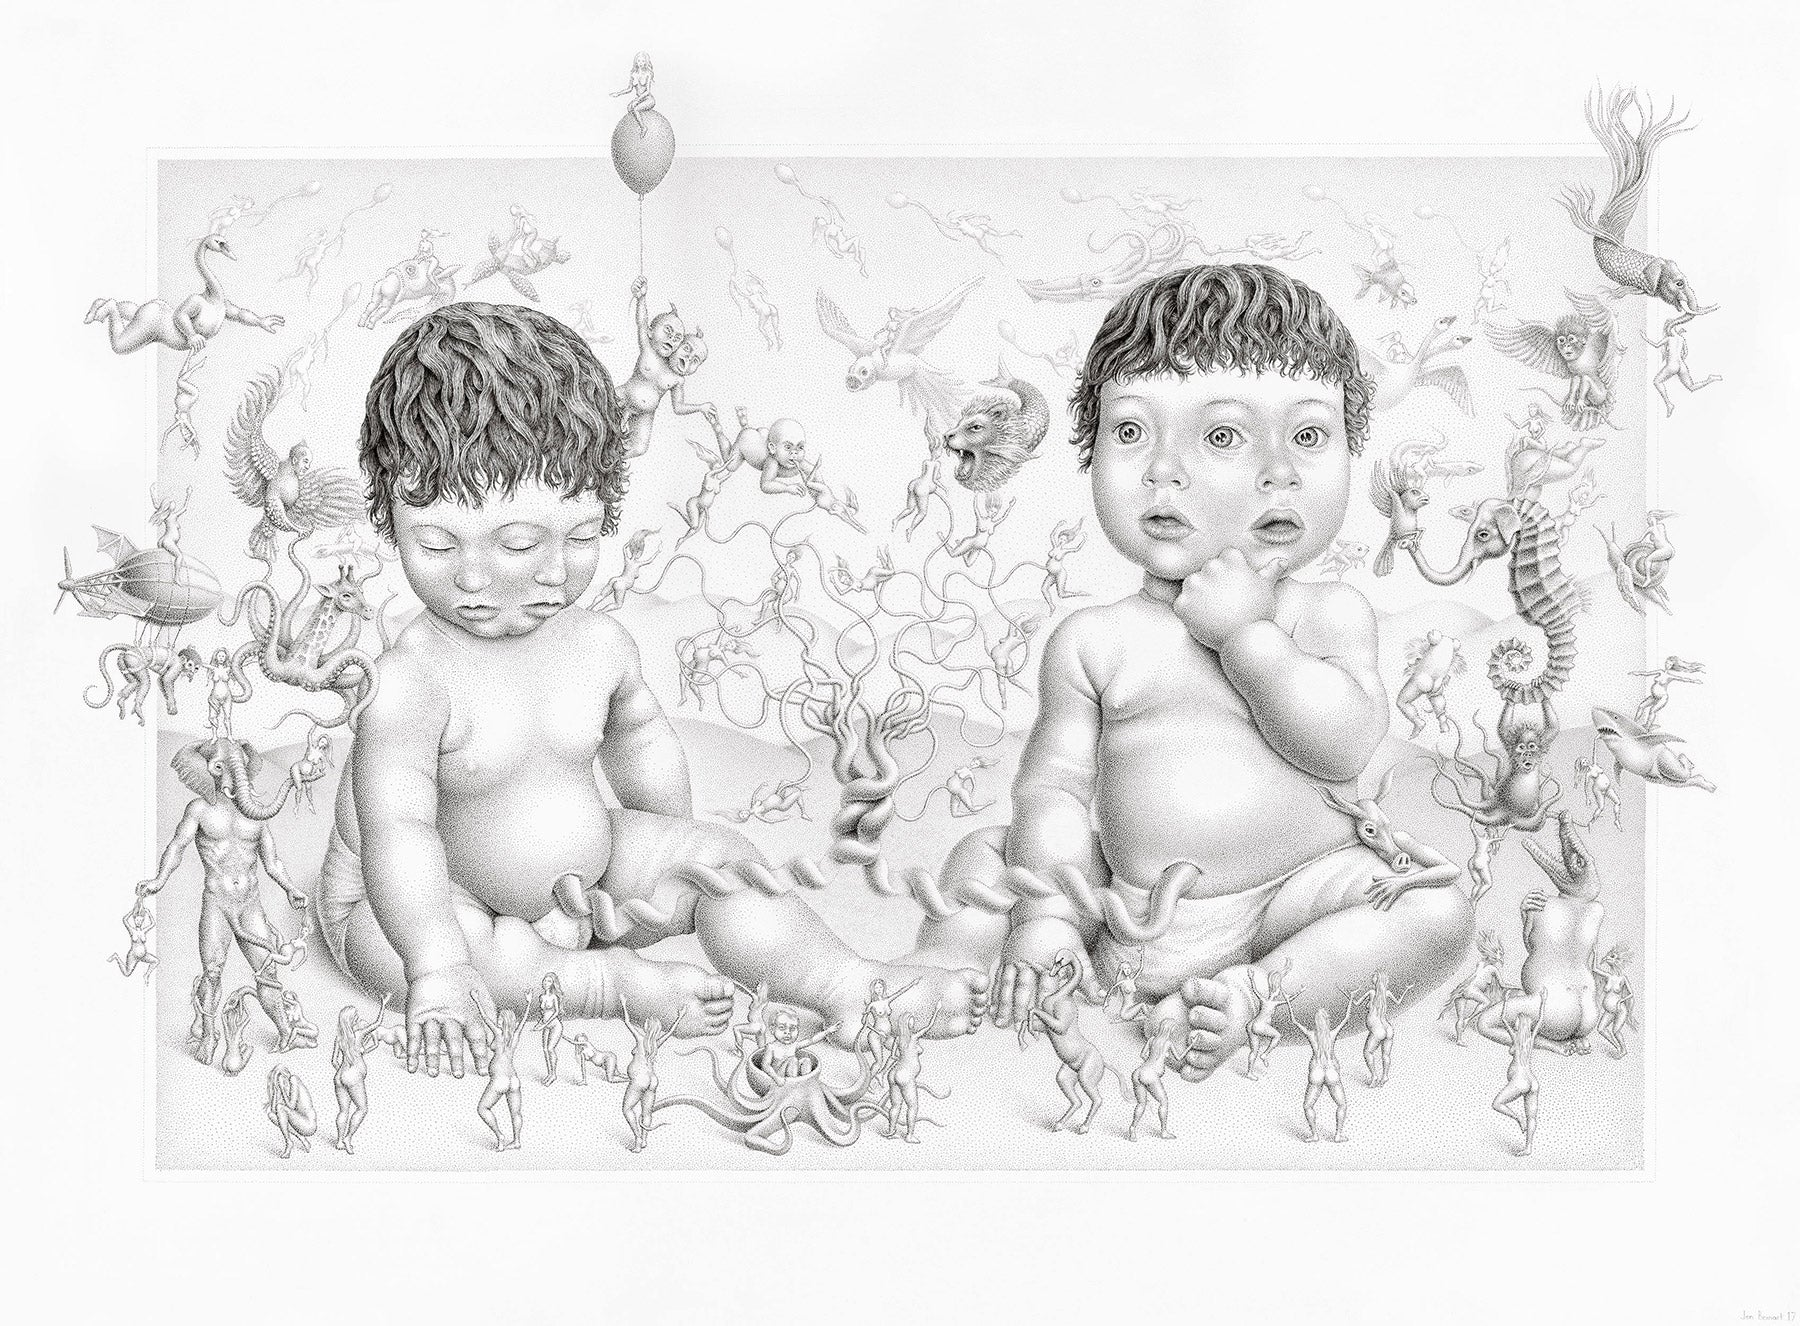 Jon Beinart - The Garden of Umbilical Dreams